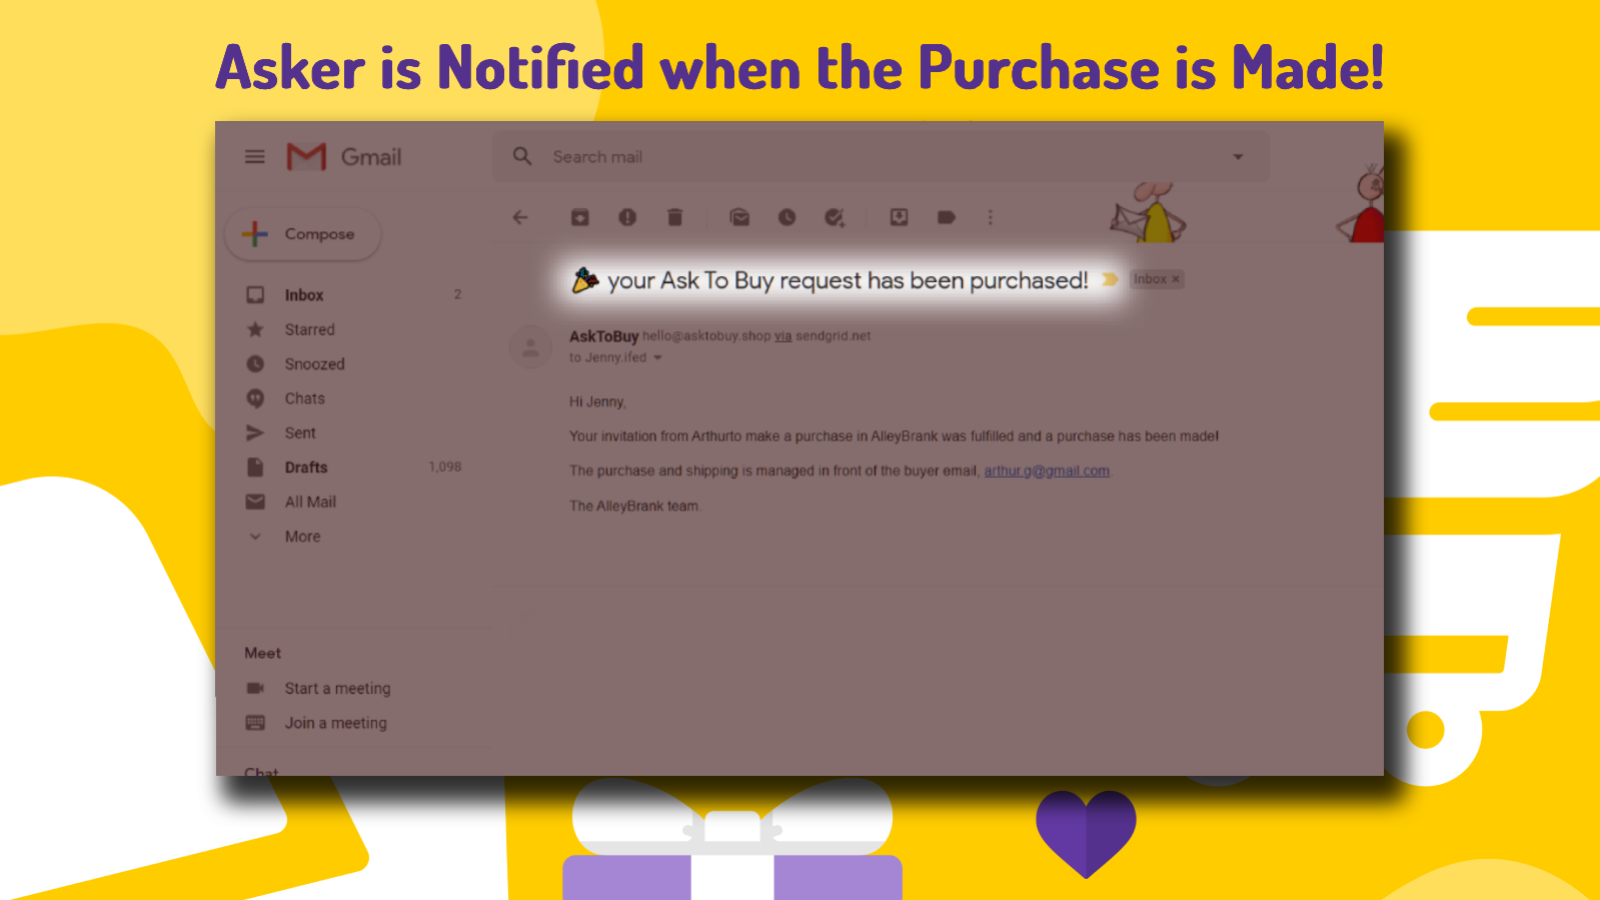 The asker is being notified when the purchase has been made